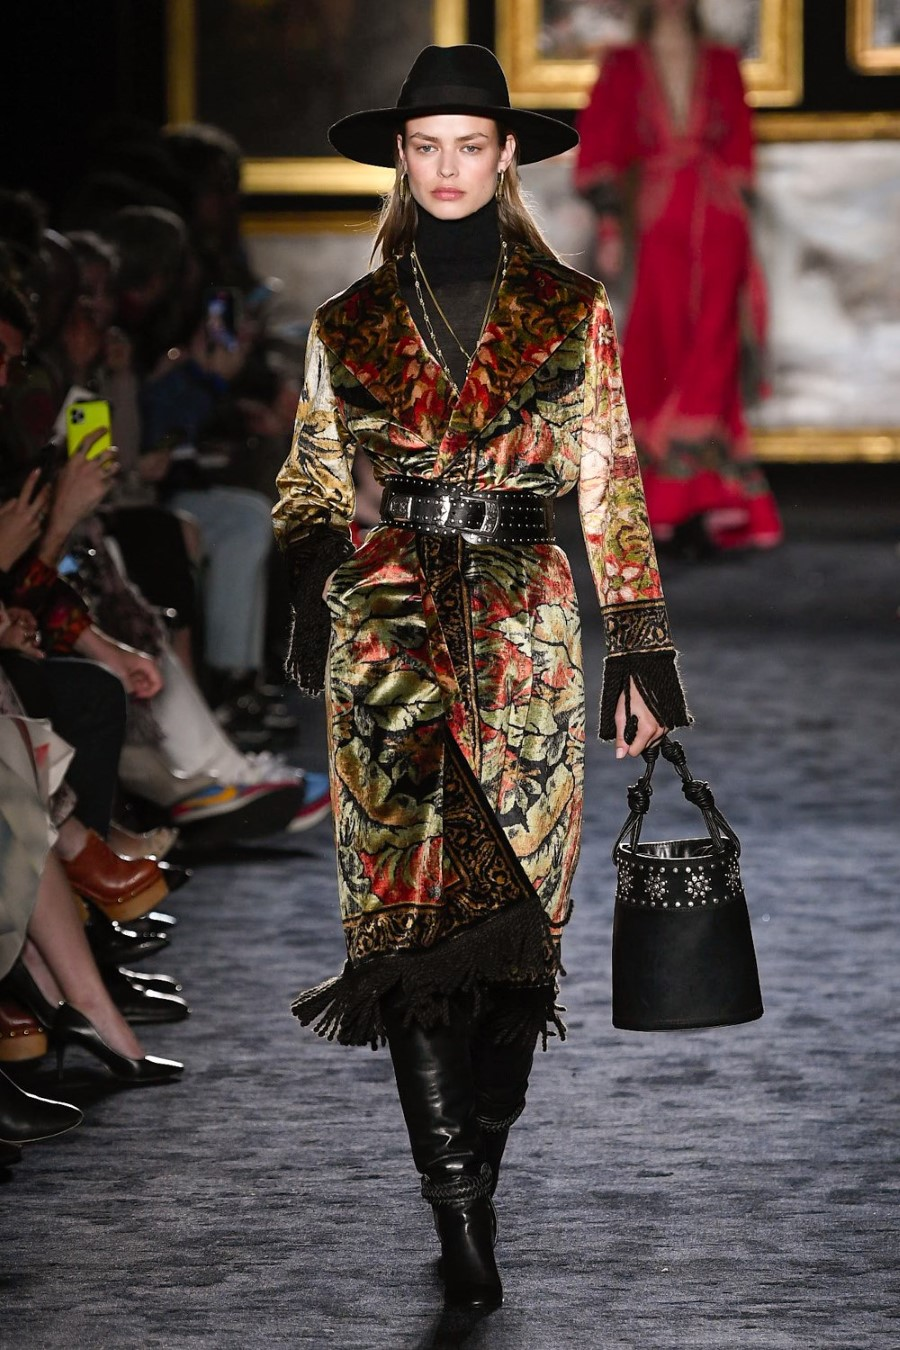 Etro - Fall Winter 2020 - Milan Fashion WeekEtro - Fall Winter 2020 - Milan Fashion Week